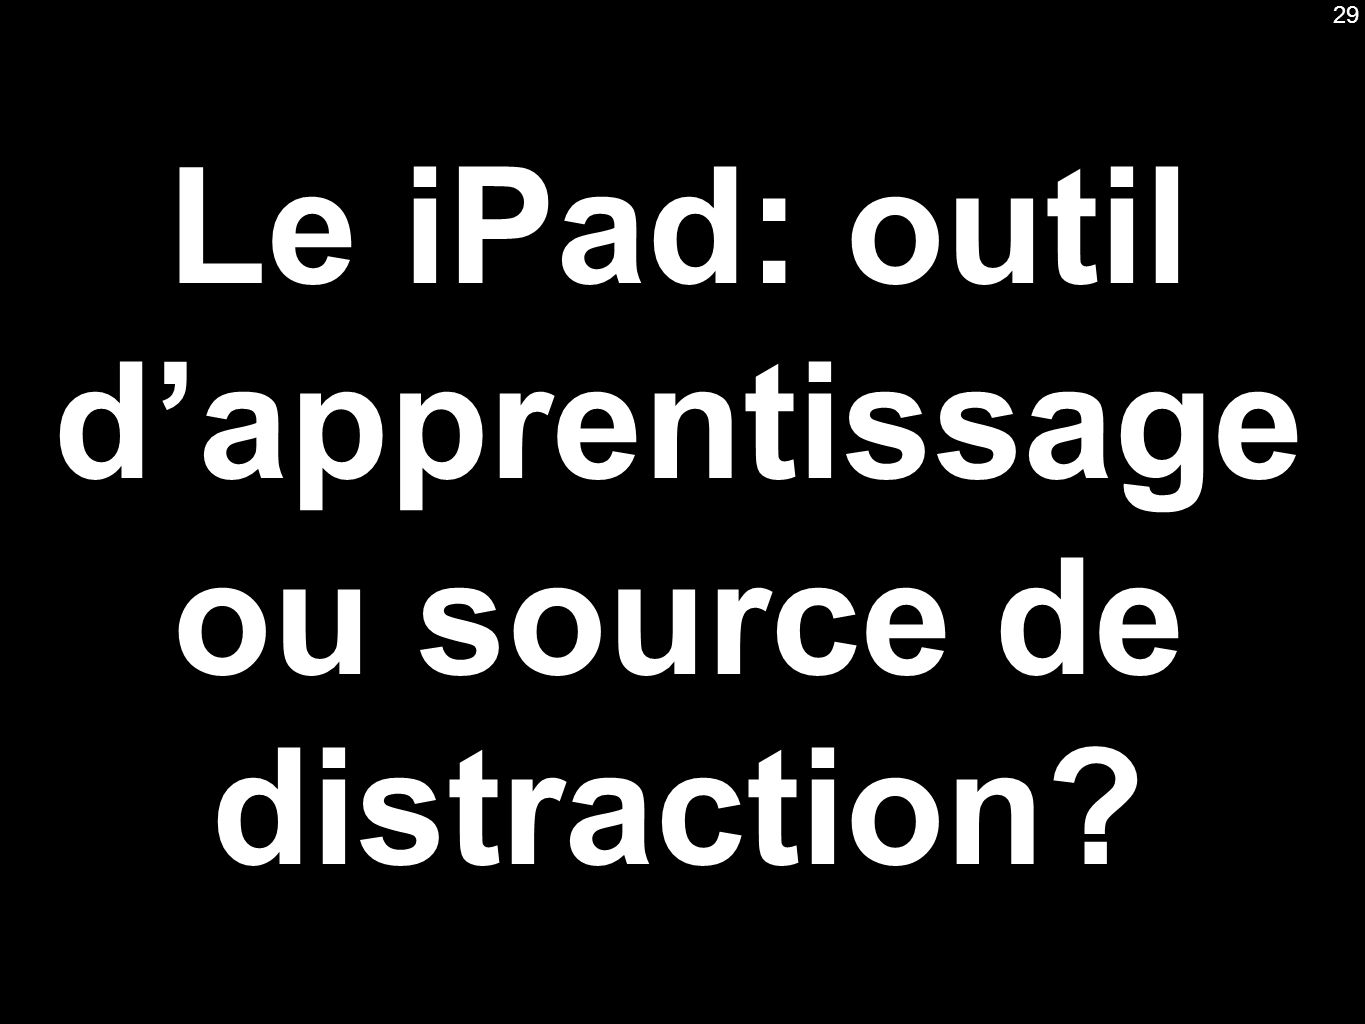 Le iPad: outil dapprentissage ou source de distraction? 29